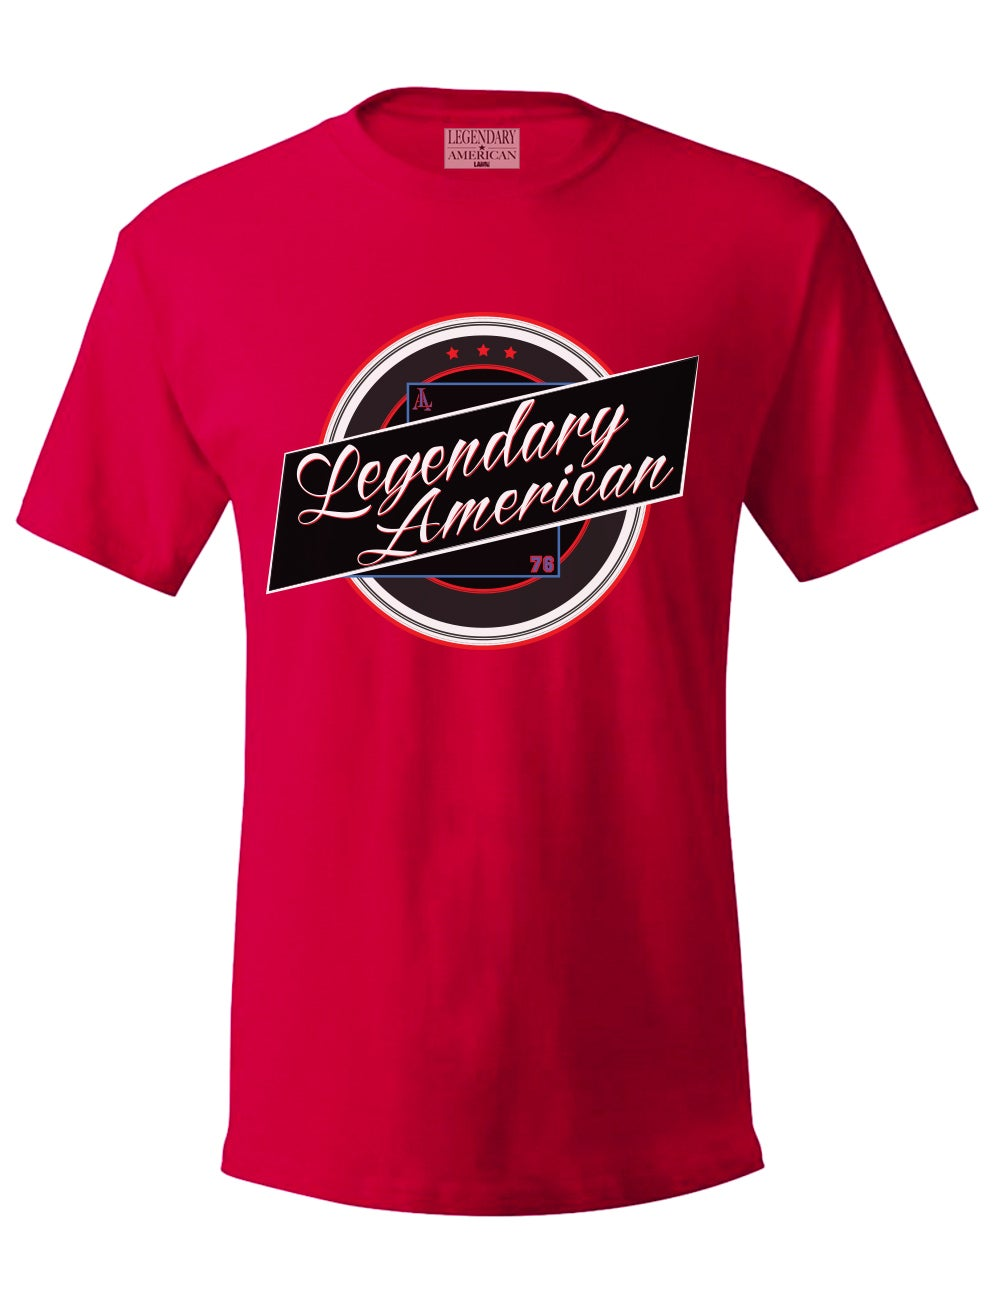 Image of Legendary American Vintage tee in red